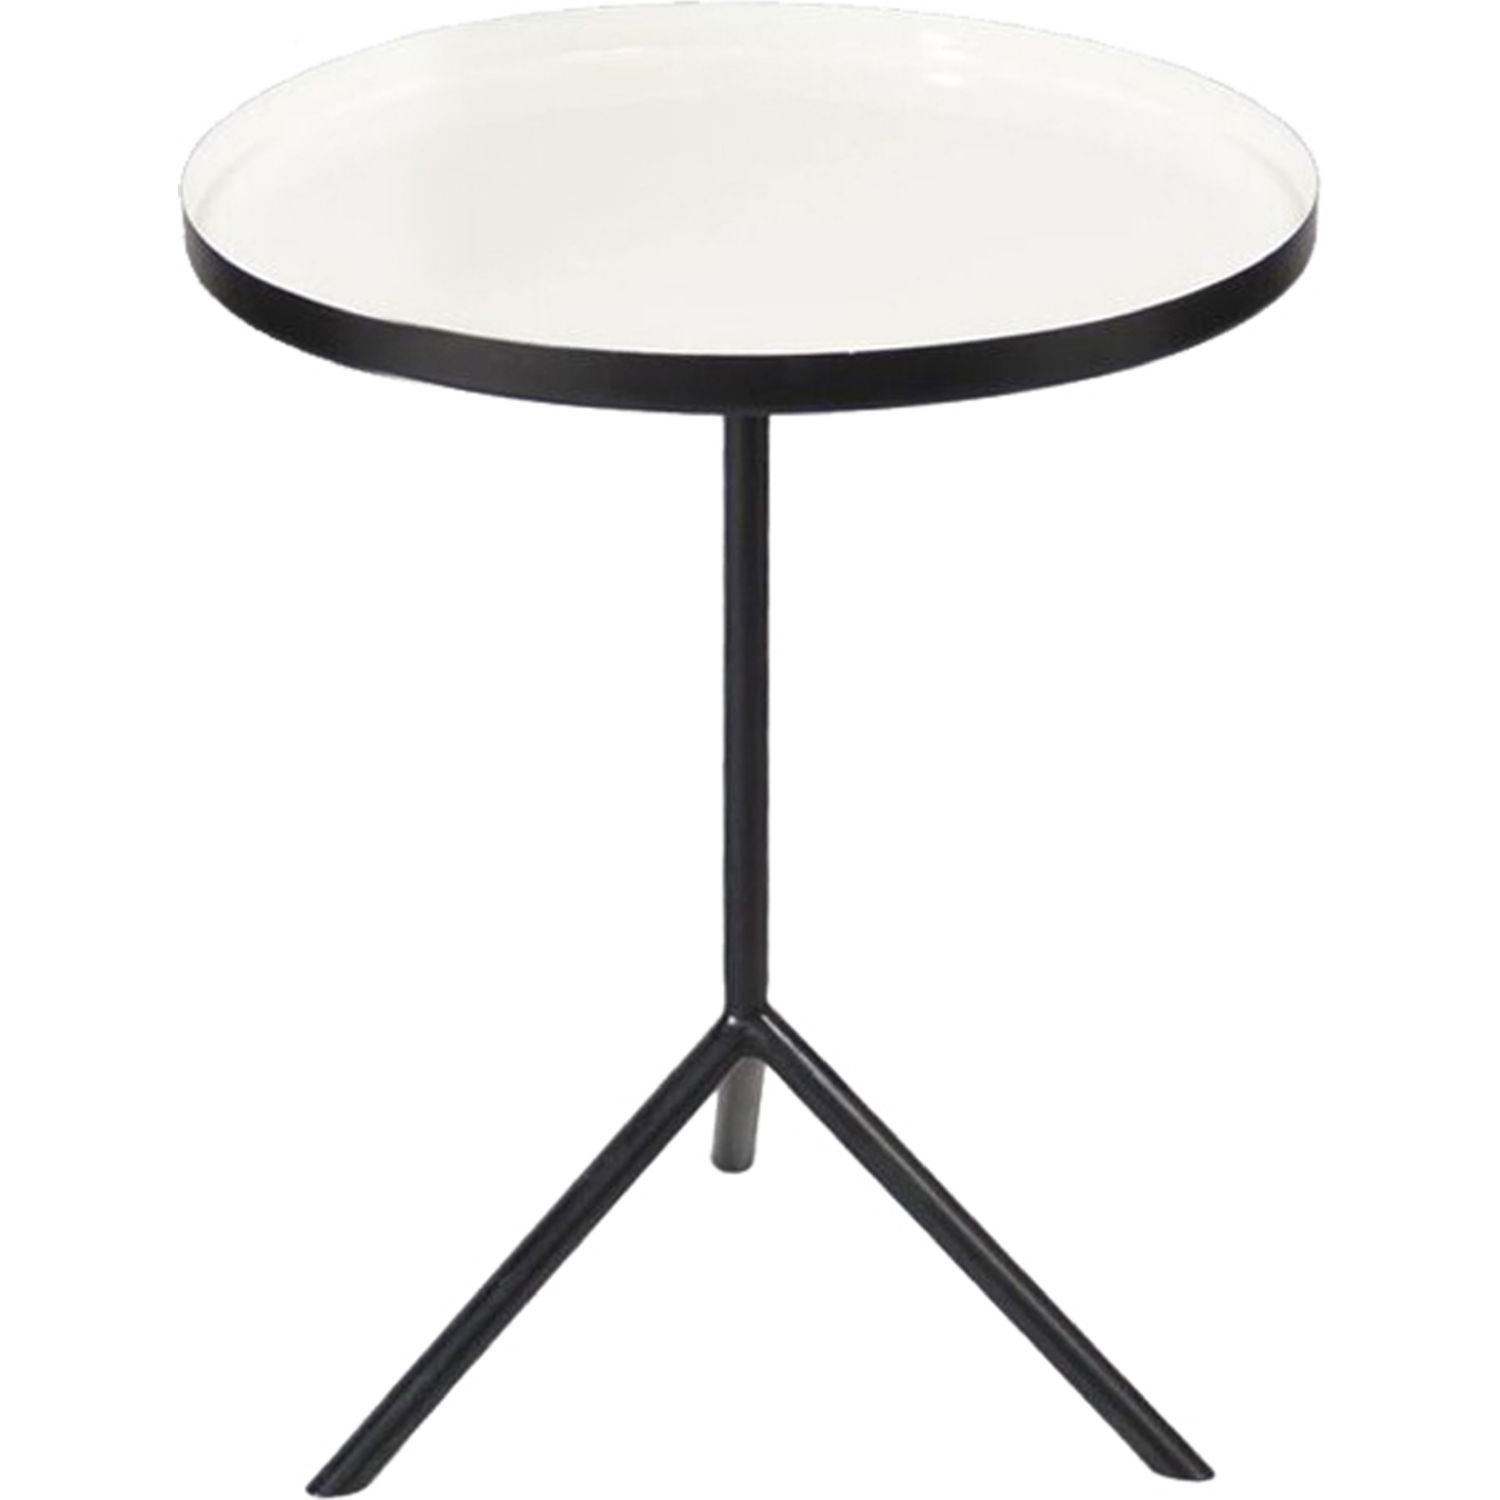 renwil chana round accent table white gloss black iron dining seats tall room sets barn door pantry skinny side ikea balcony and chairs kitchen large ginger jar lamps square